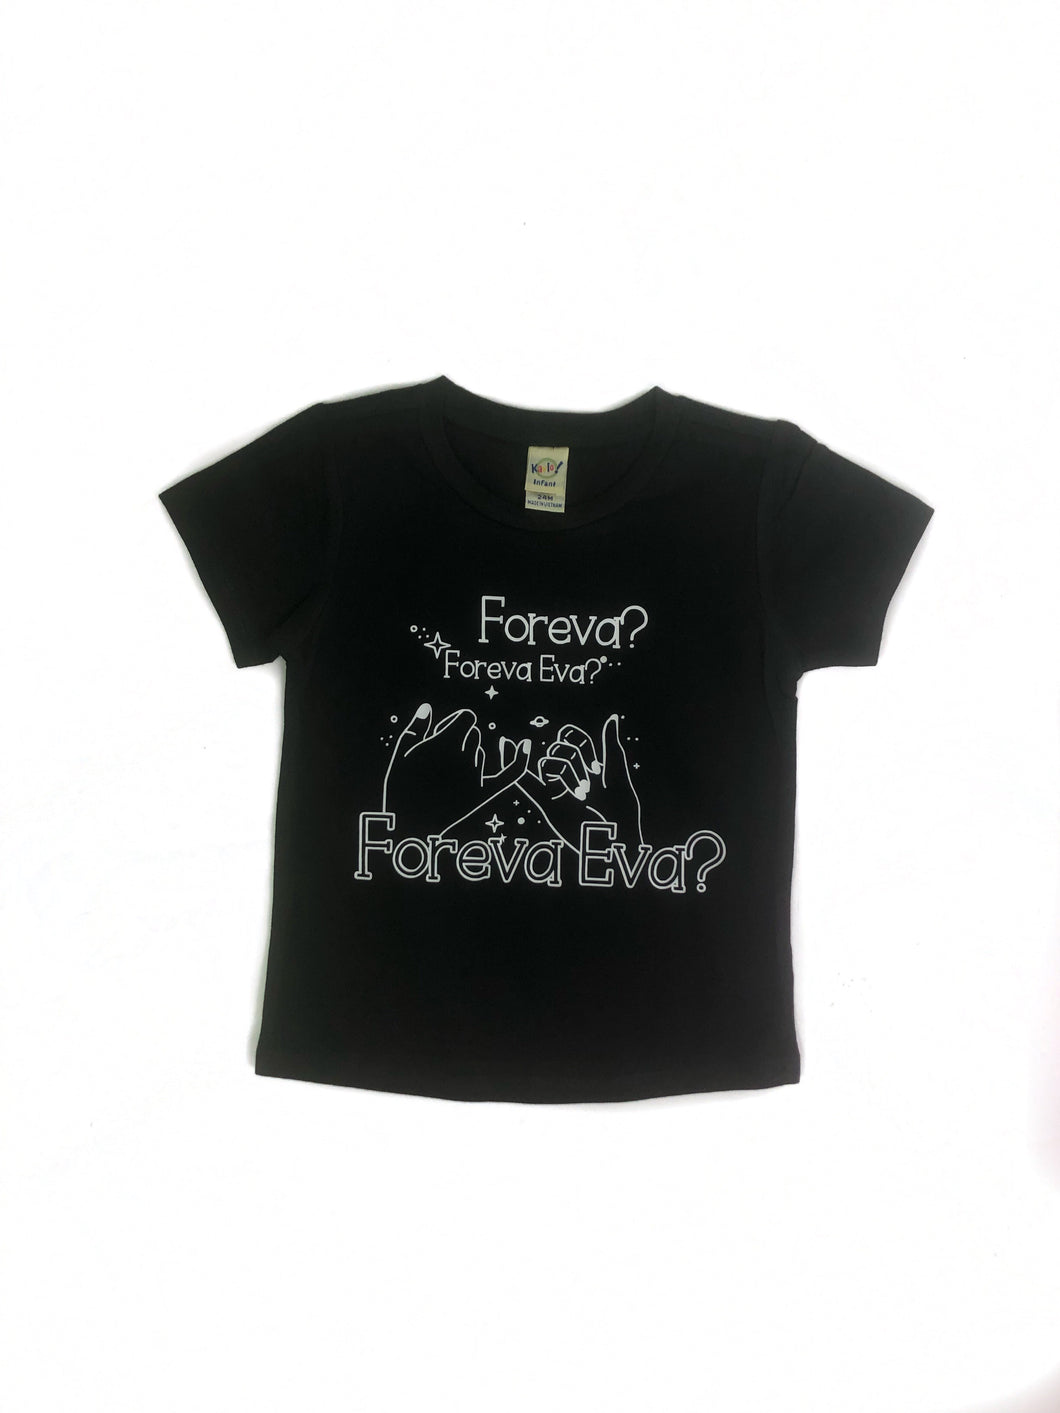 Foreva? Kids t-shirt